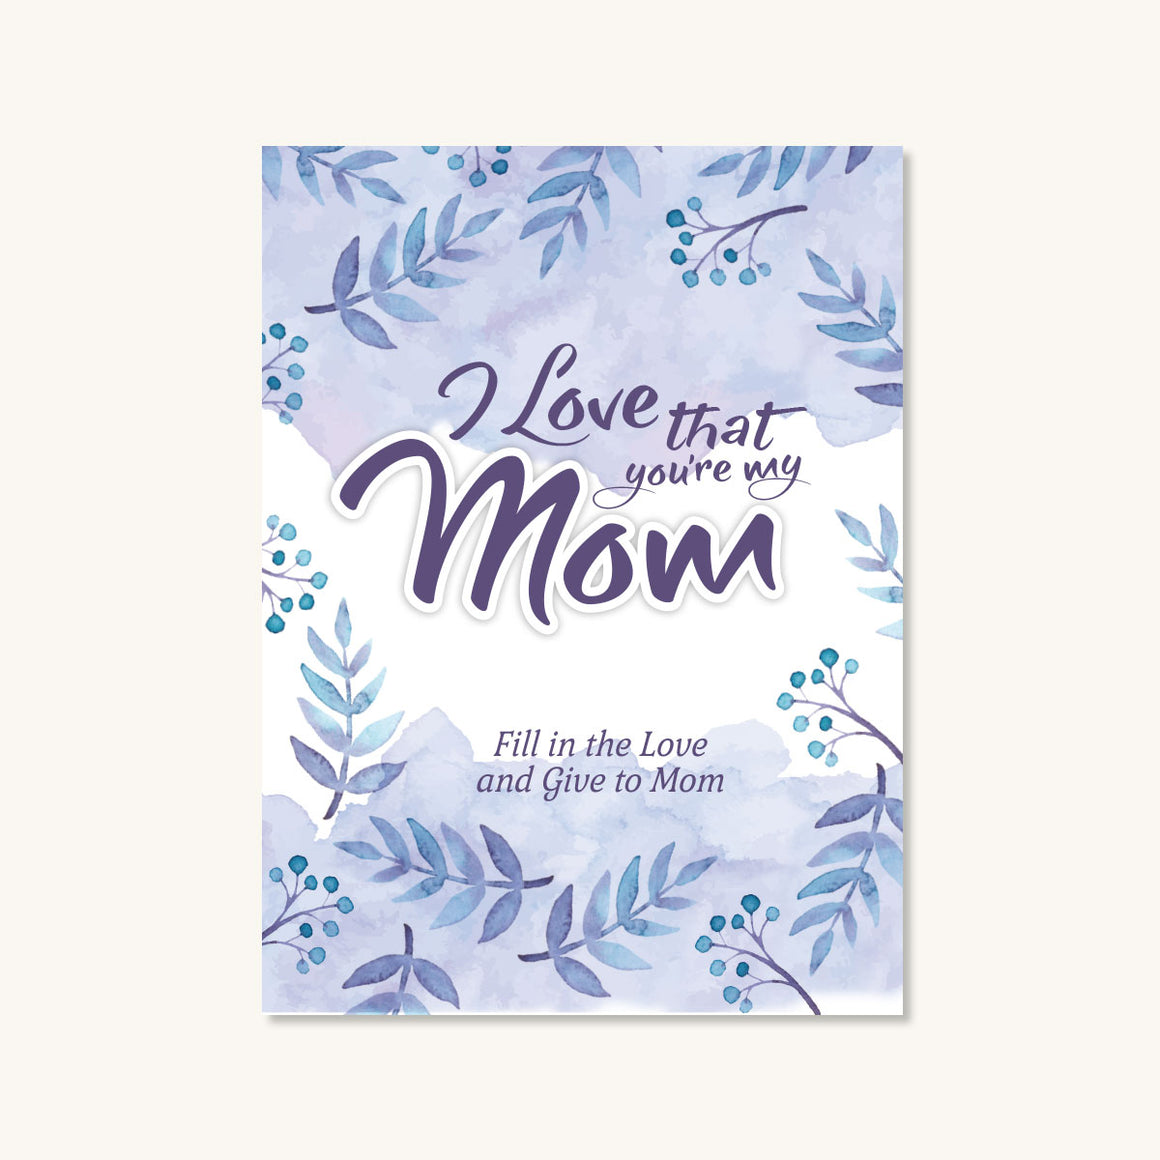 I Love That You're My Mom Journal